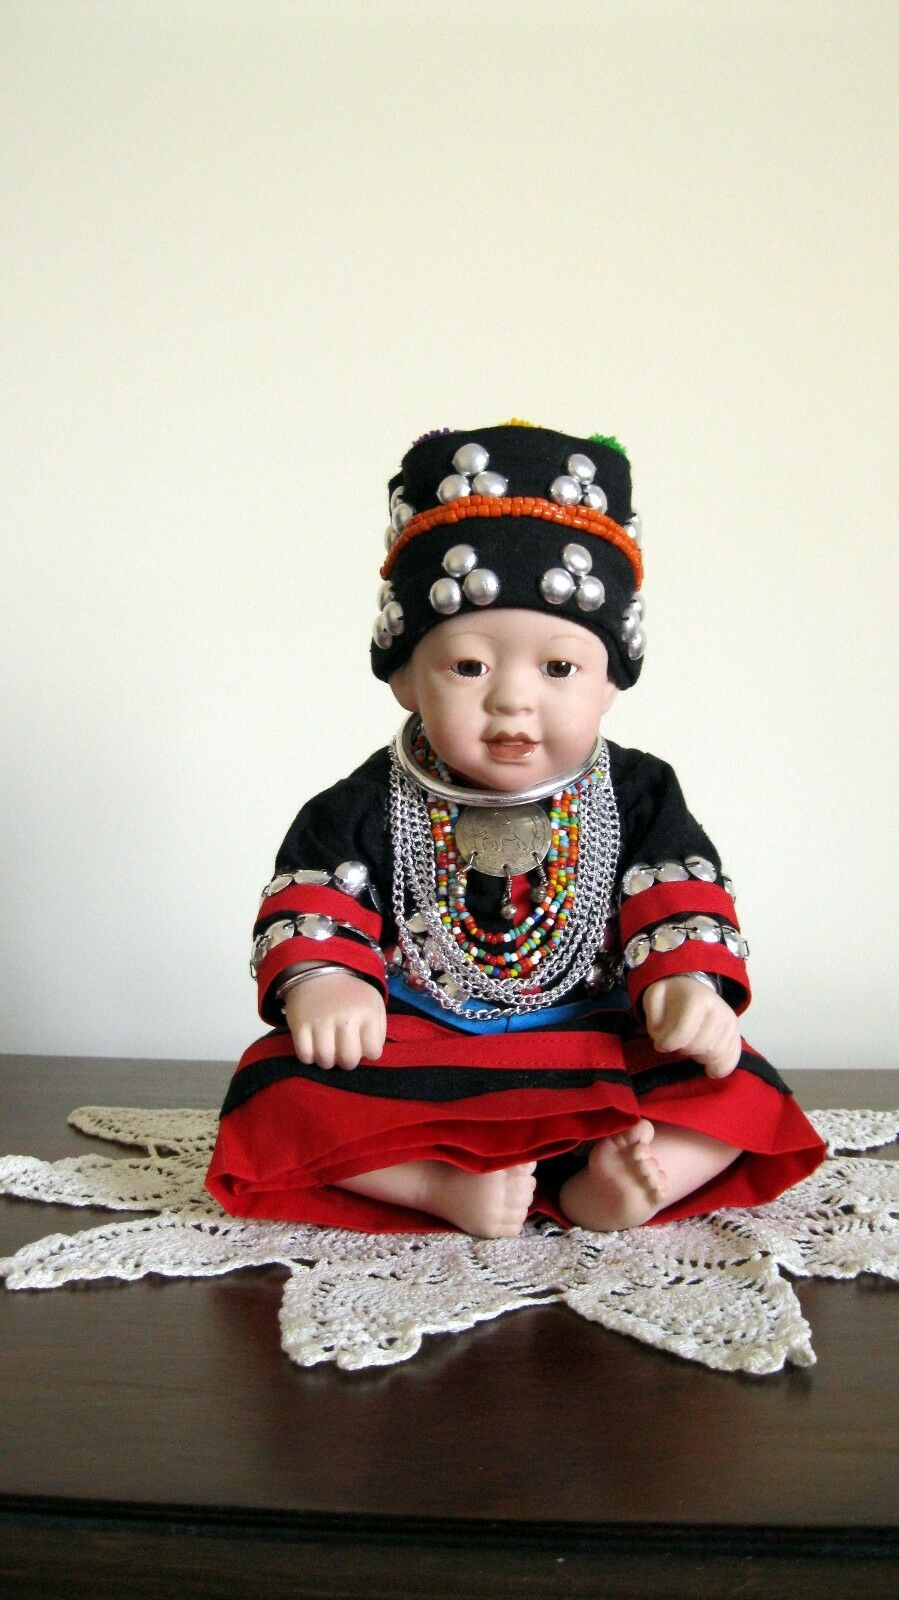 OOAK Porcelain Thai Lahu Hill Tribe Sitting Doll of Northern Thailand (New)  B